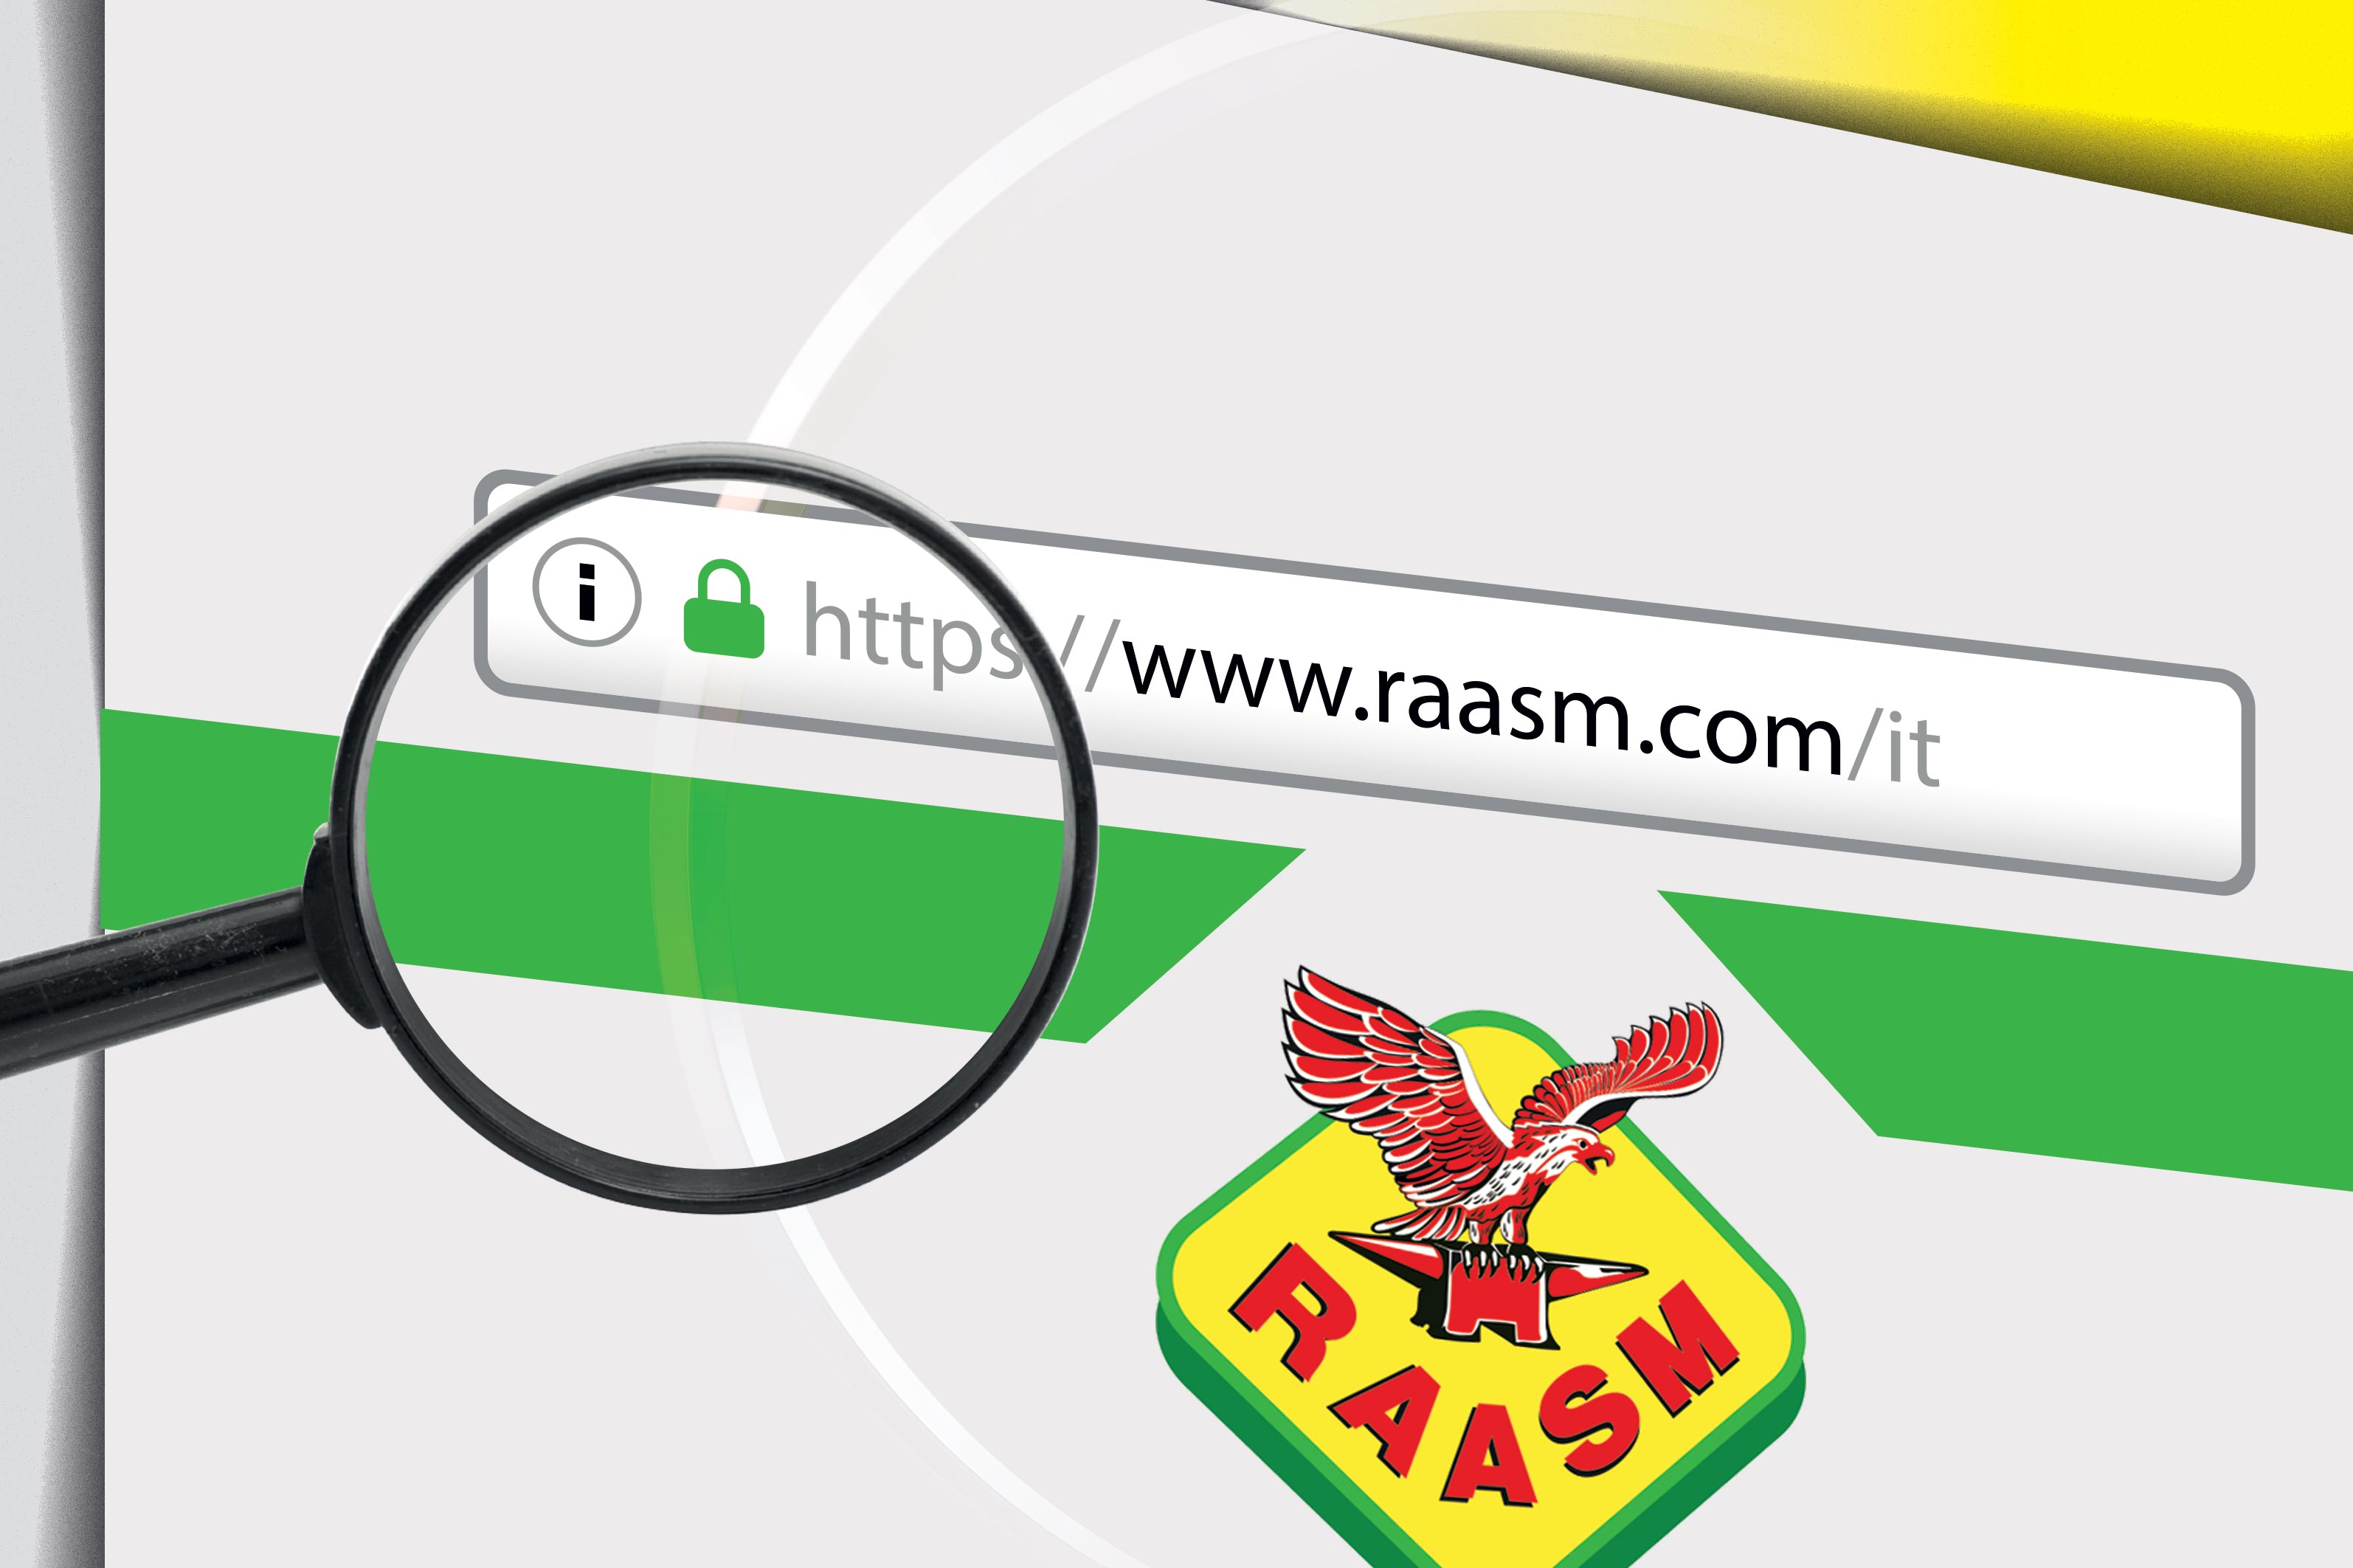 SAFELY SURFING ON THE NEW RAASM WEBSITE